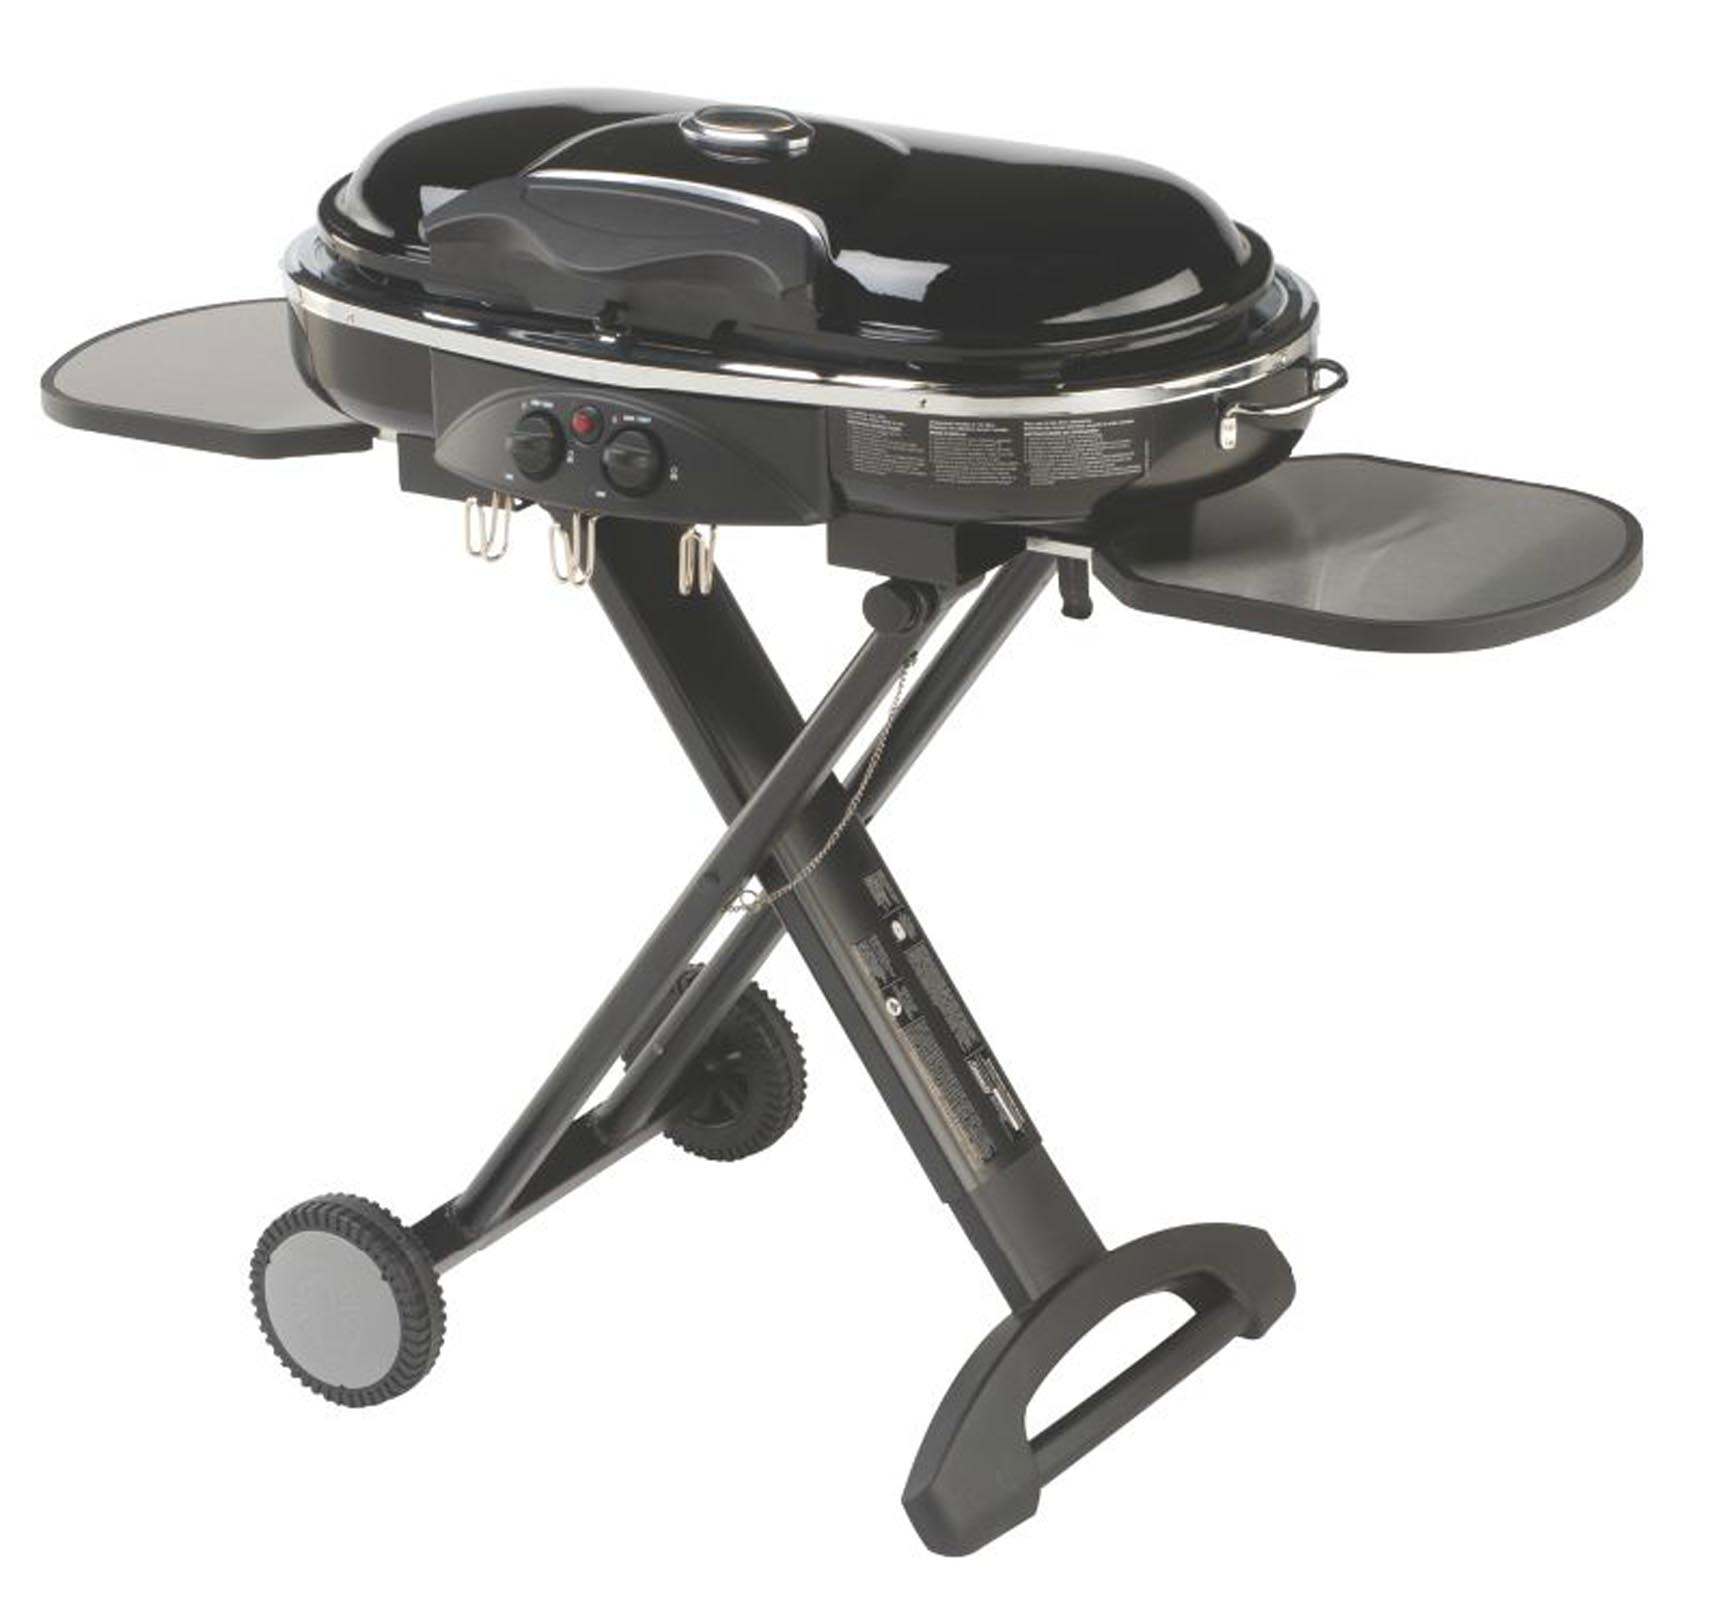 COLEMAN Camping Tailgating Portable Standup Propane RoadTrip LXX Grill - Black